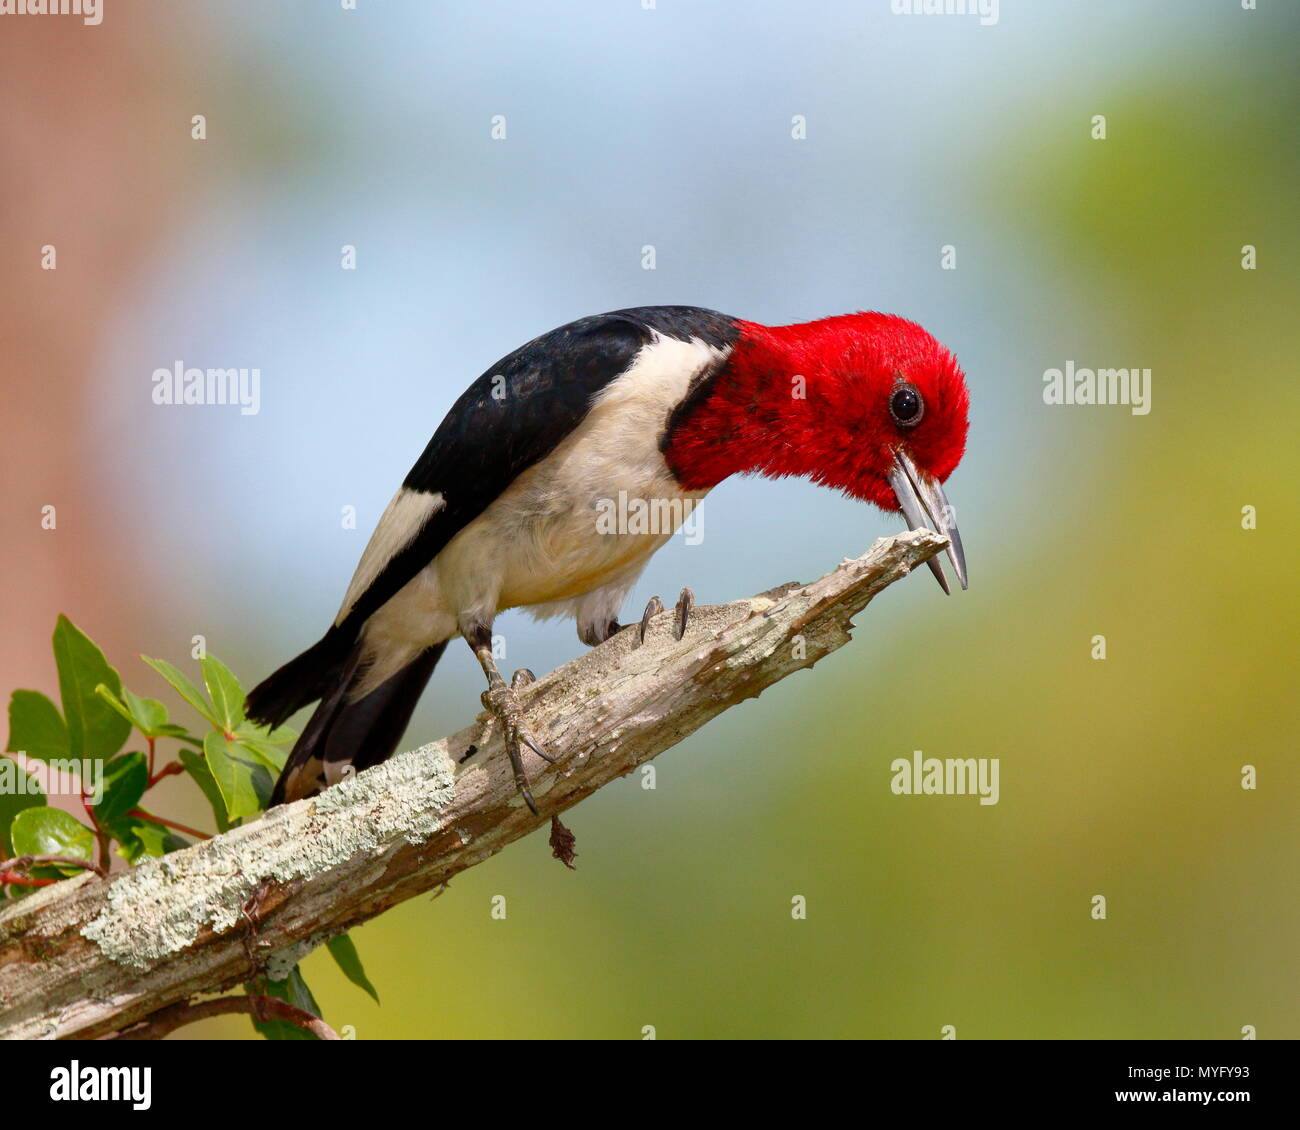 A red-headed woodpecker, Melanerpes erythrocephalus, sharpening its bill on a dead pine tree branch. - Stock Image